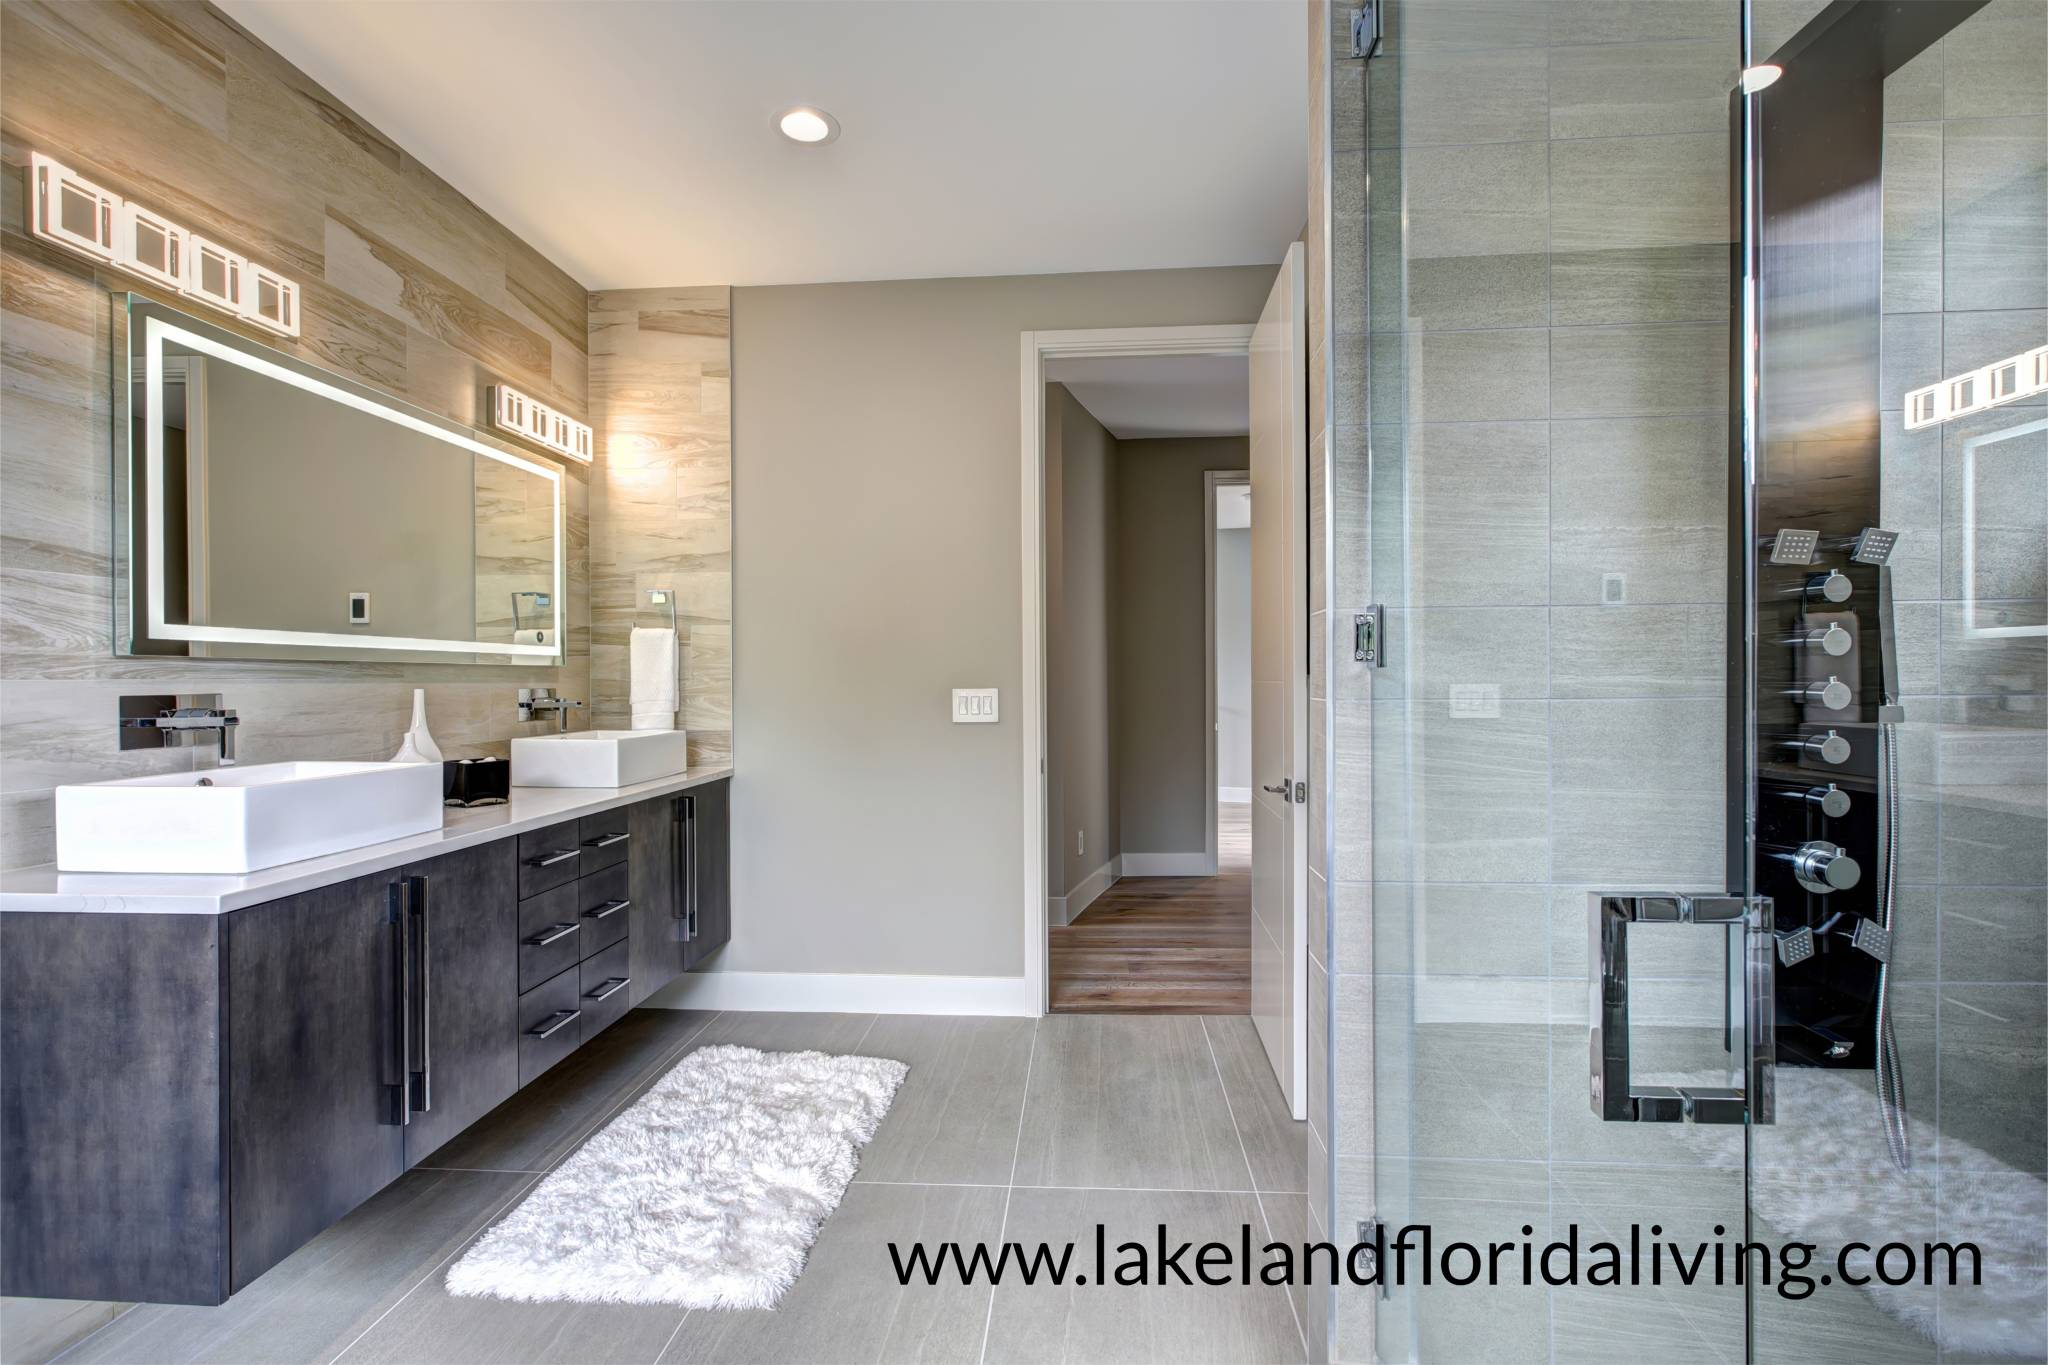 Bathroom Remodeling Trends That Sells Lakeland Real Estate - Materials for bathroom renovation